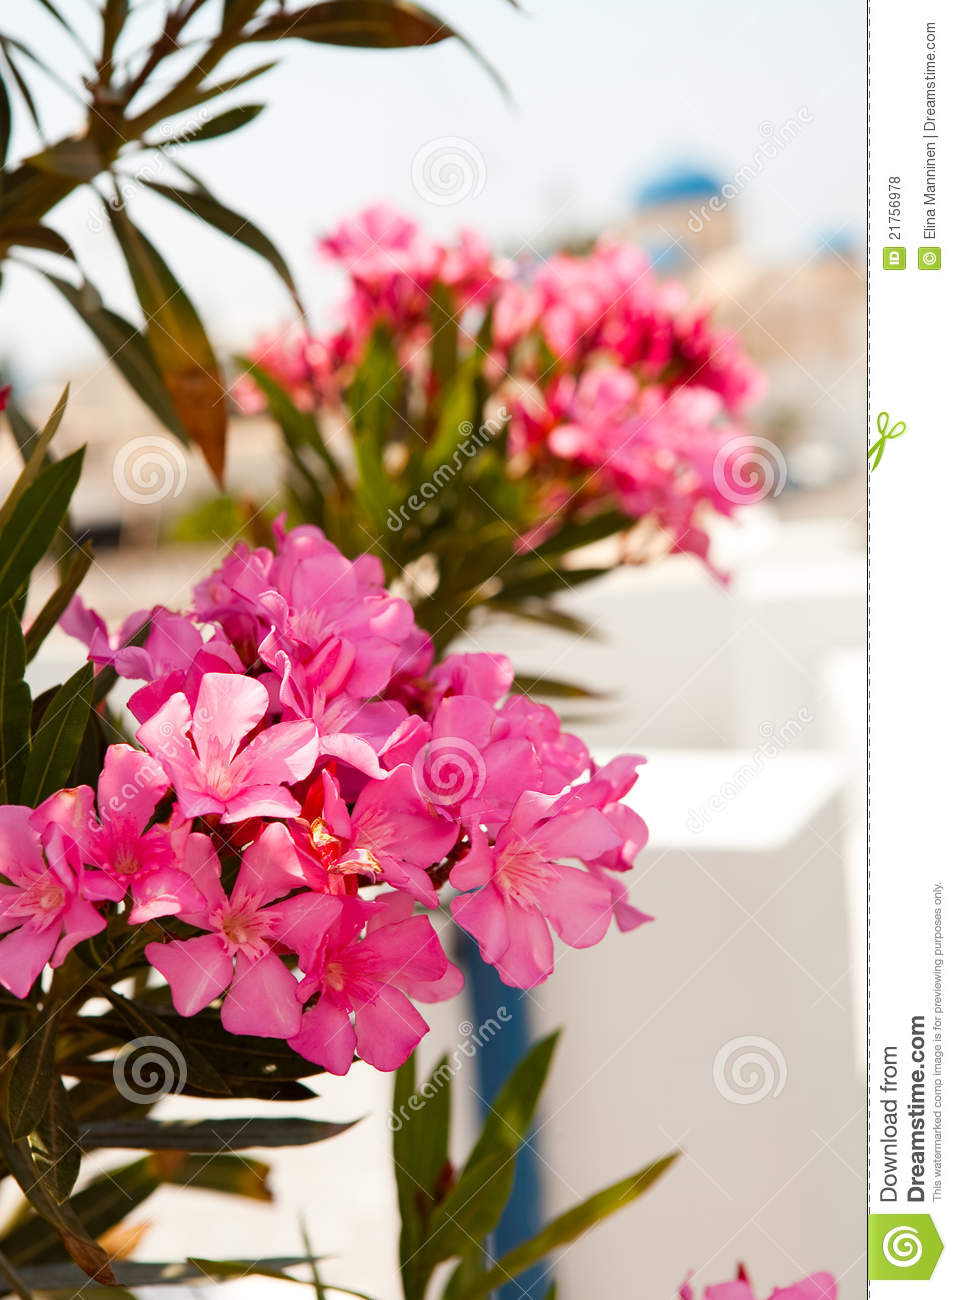 Pink Flowers In Perissa Santorini Greece Stock Photo  Image of church plant 21756978